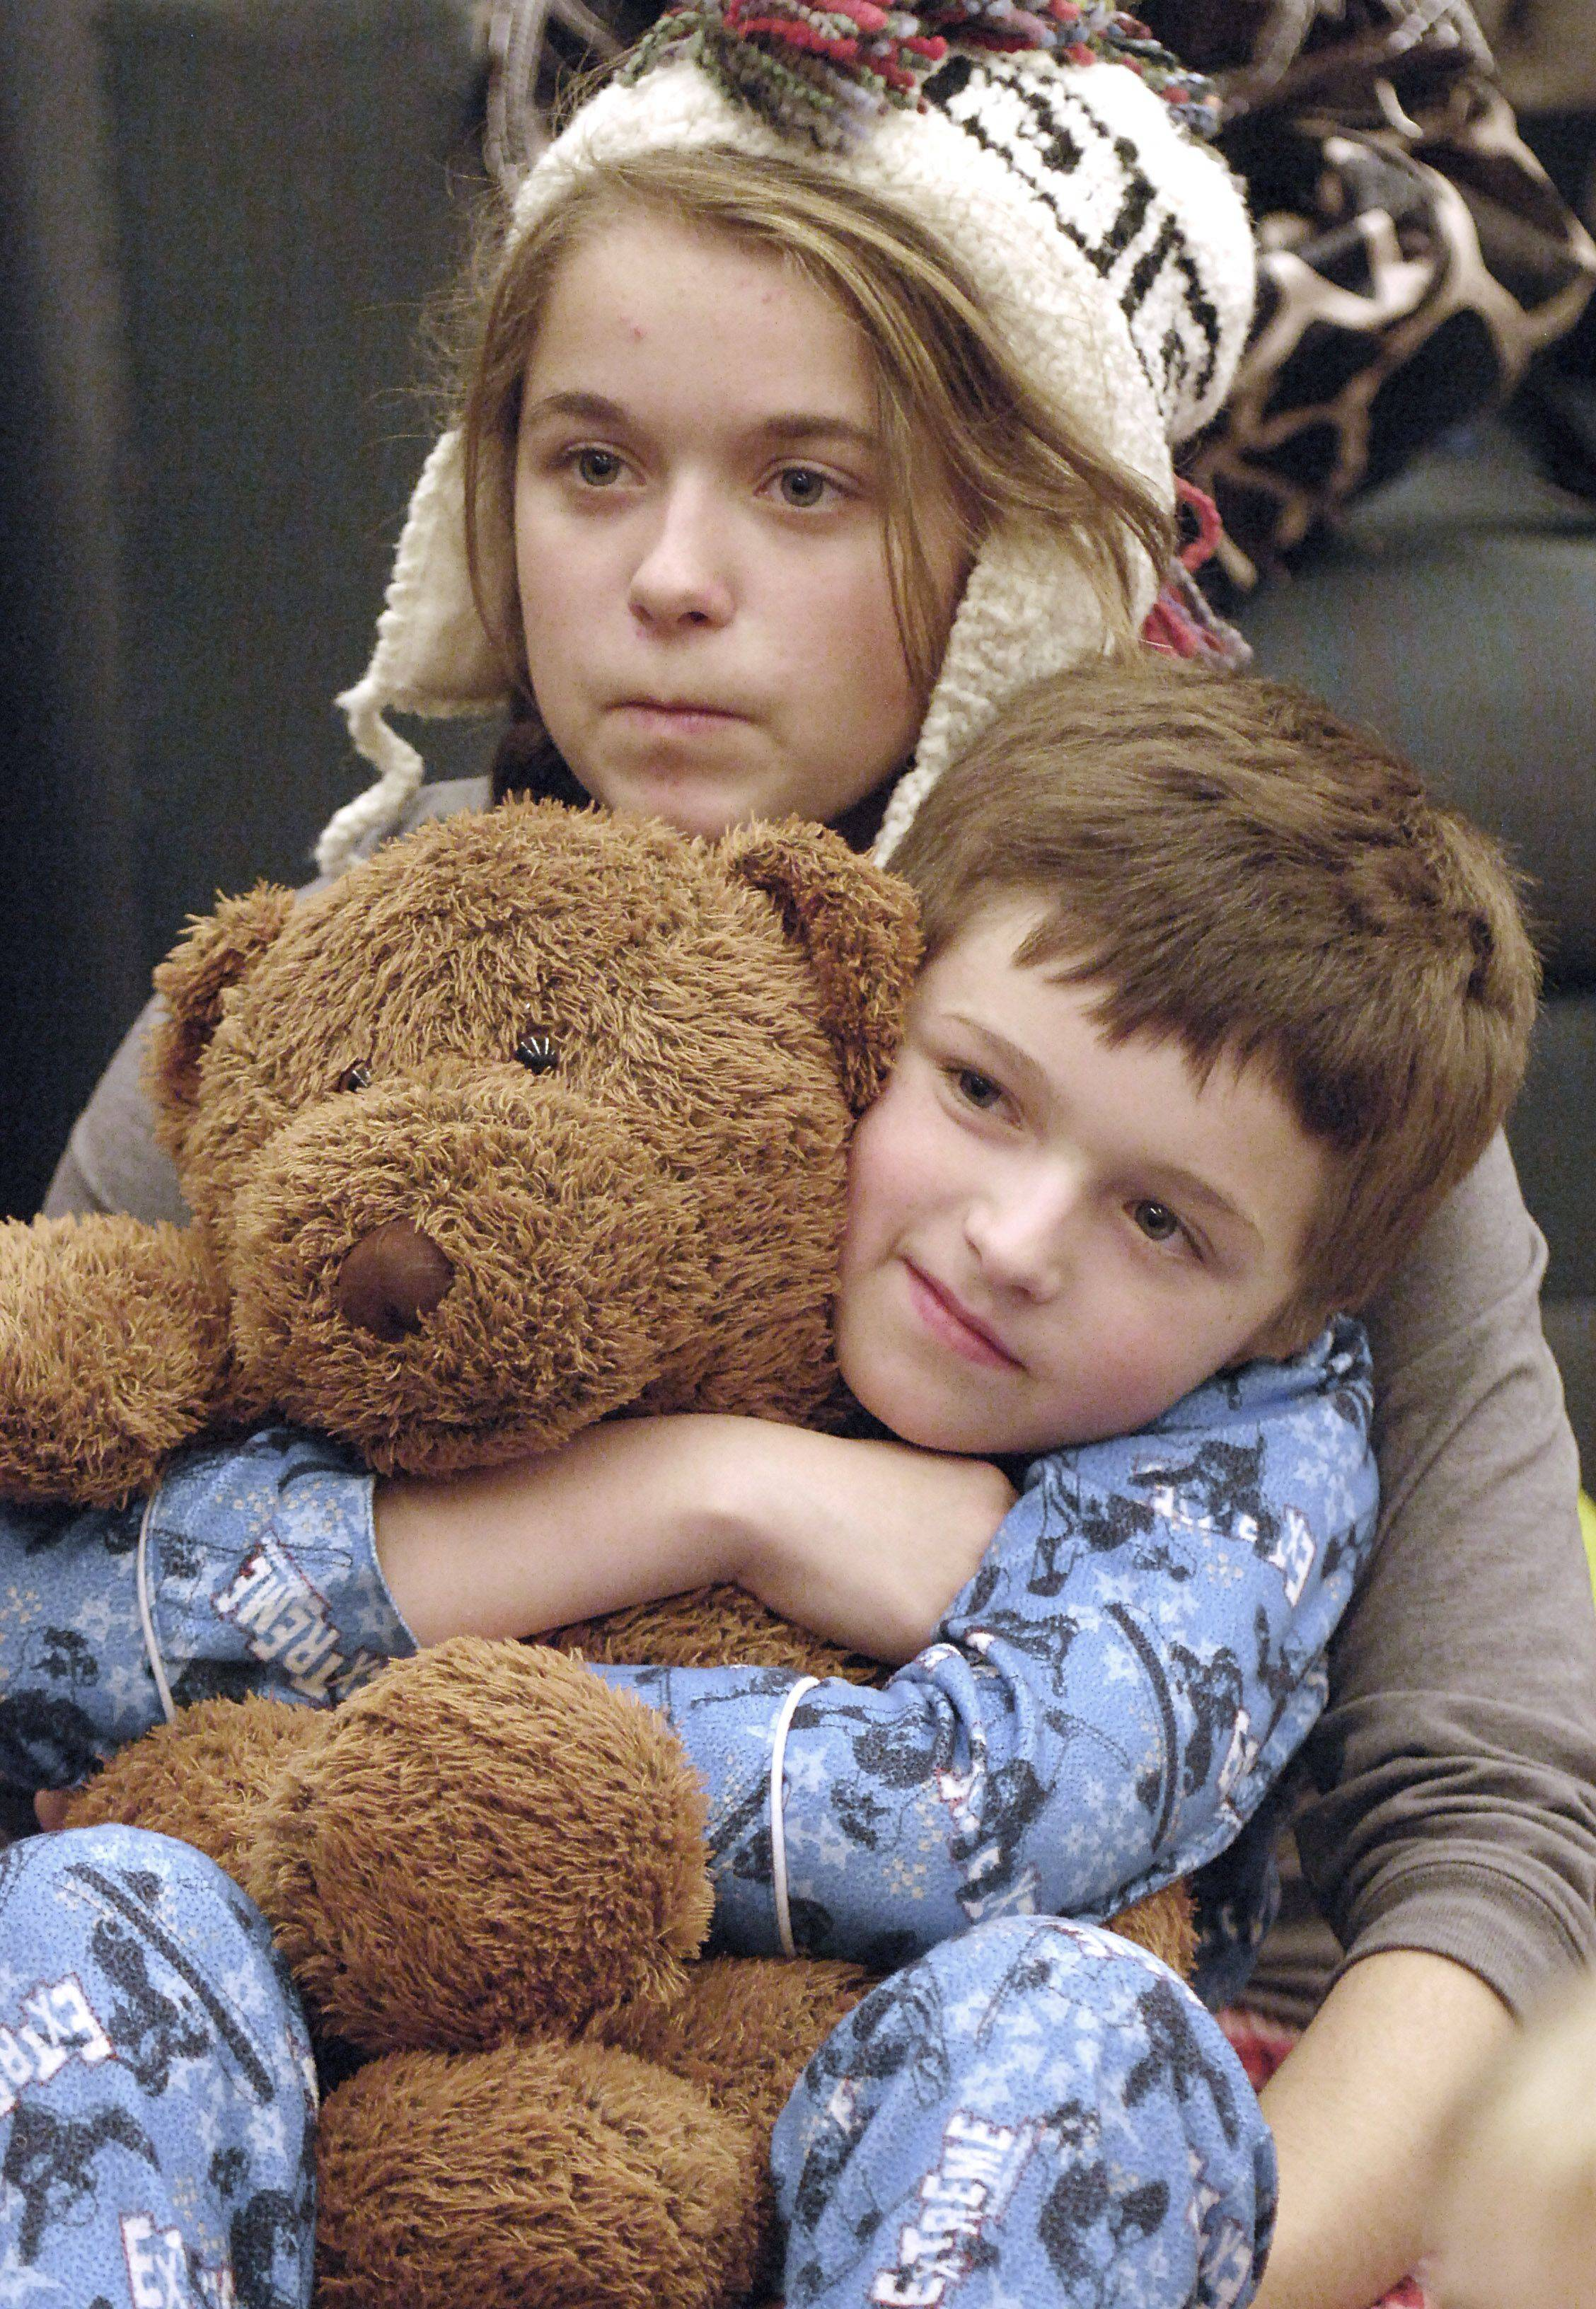 McKenzie Palm, 15, and little brother, Keegan, 8, of Sycamore cuddle up and listen to Kane county judges read books aloud in the Law Library at the Kane County Judicial Center in St. Charles on Wednesday, November 17. McKenzie has been coming to the annual reading event since she was a little girl.